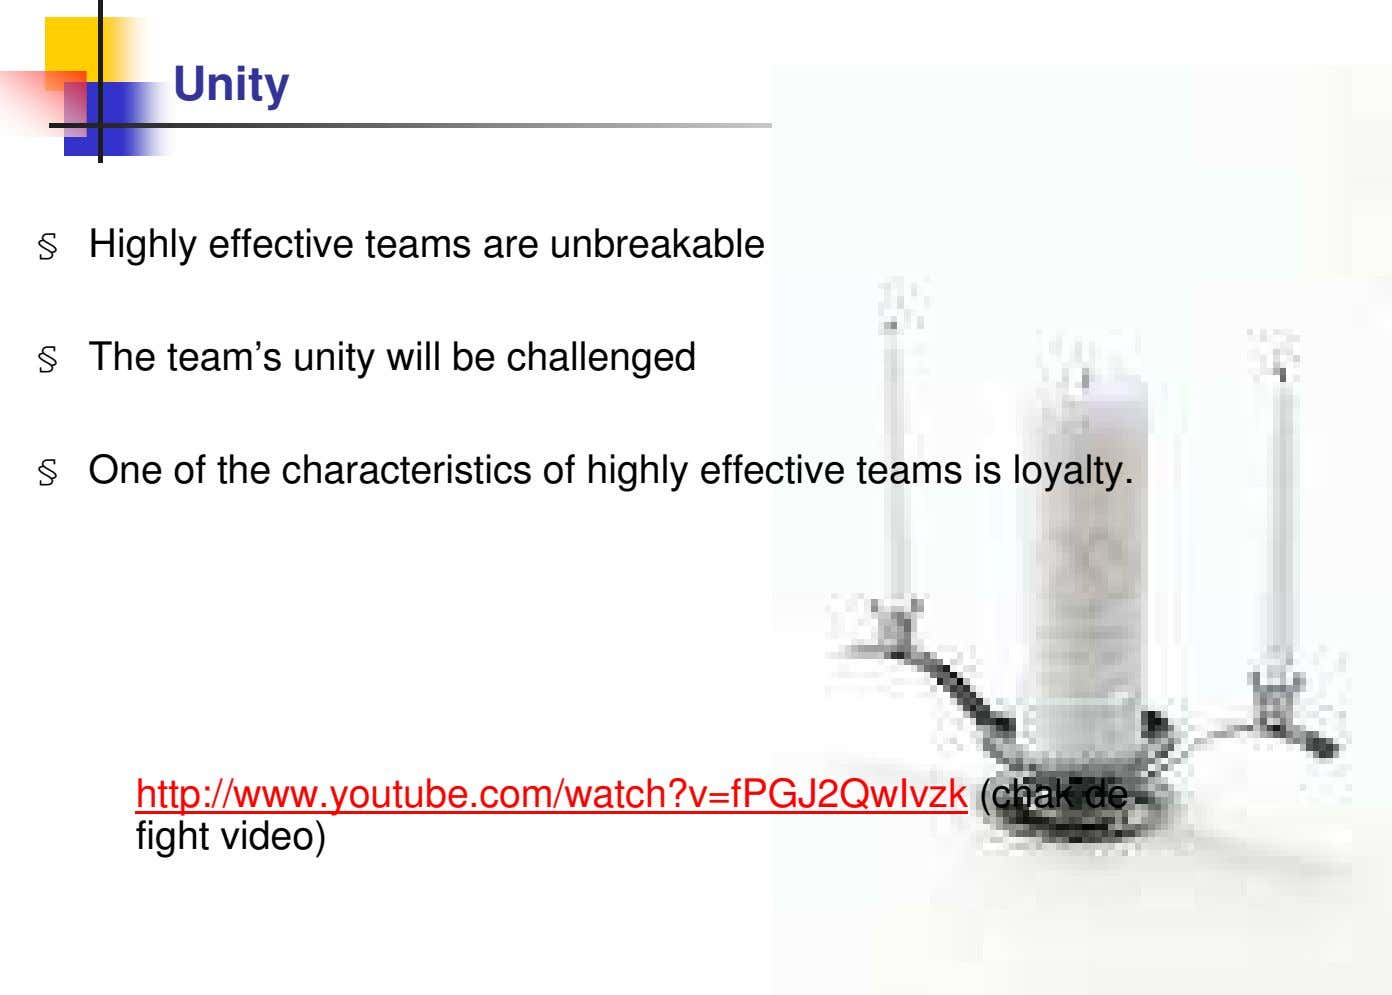 Unity § Highly effective teams are unbreakable § The team's unity will be challenged §